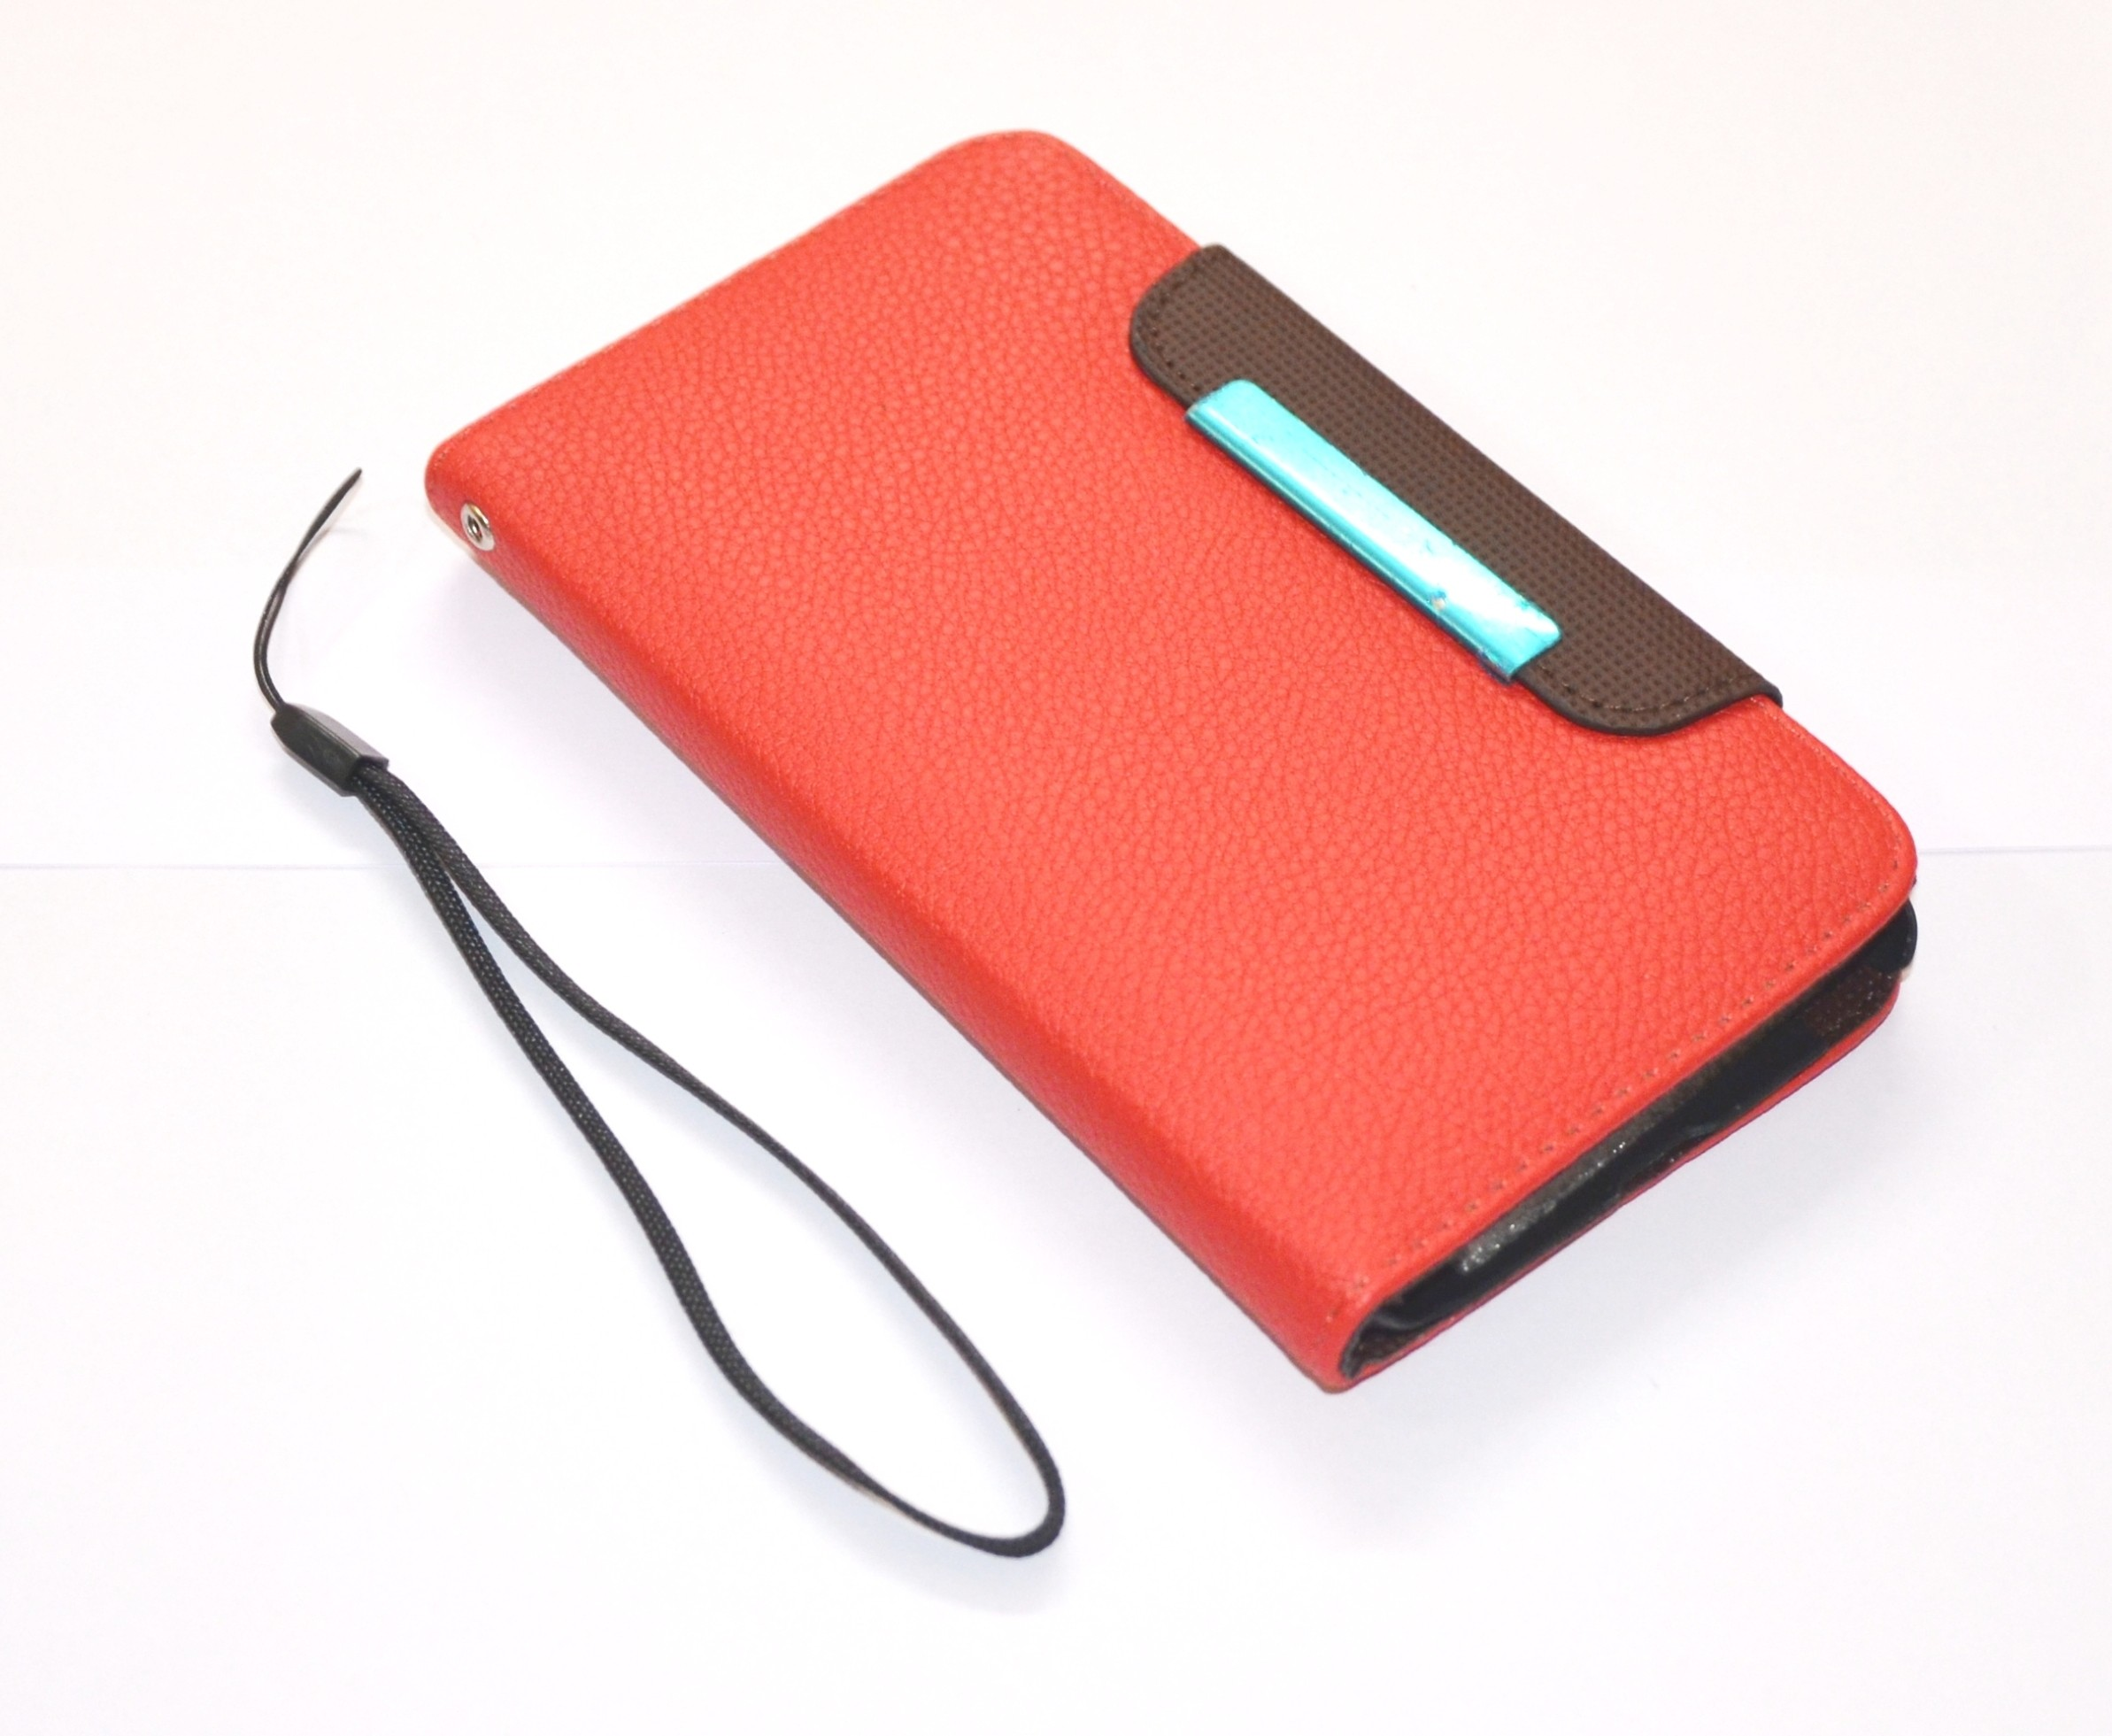 Gioiabazar Flip Cover for LG Optimus G2 D802